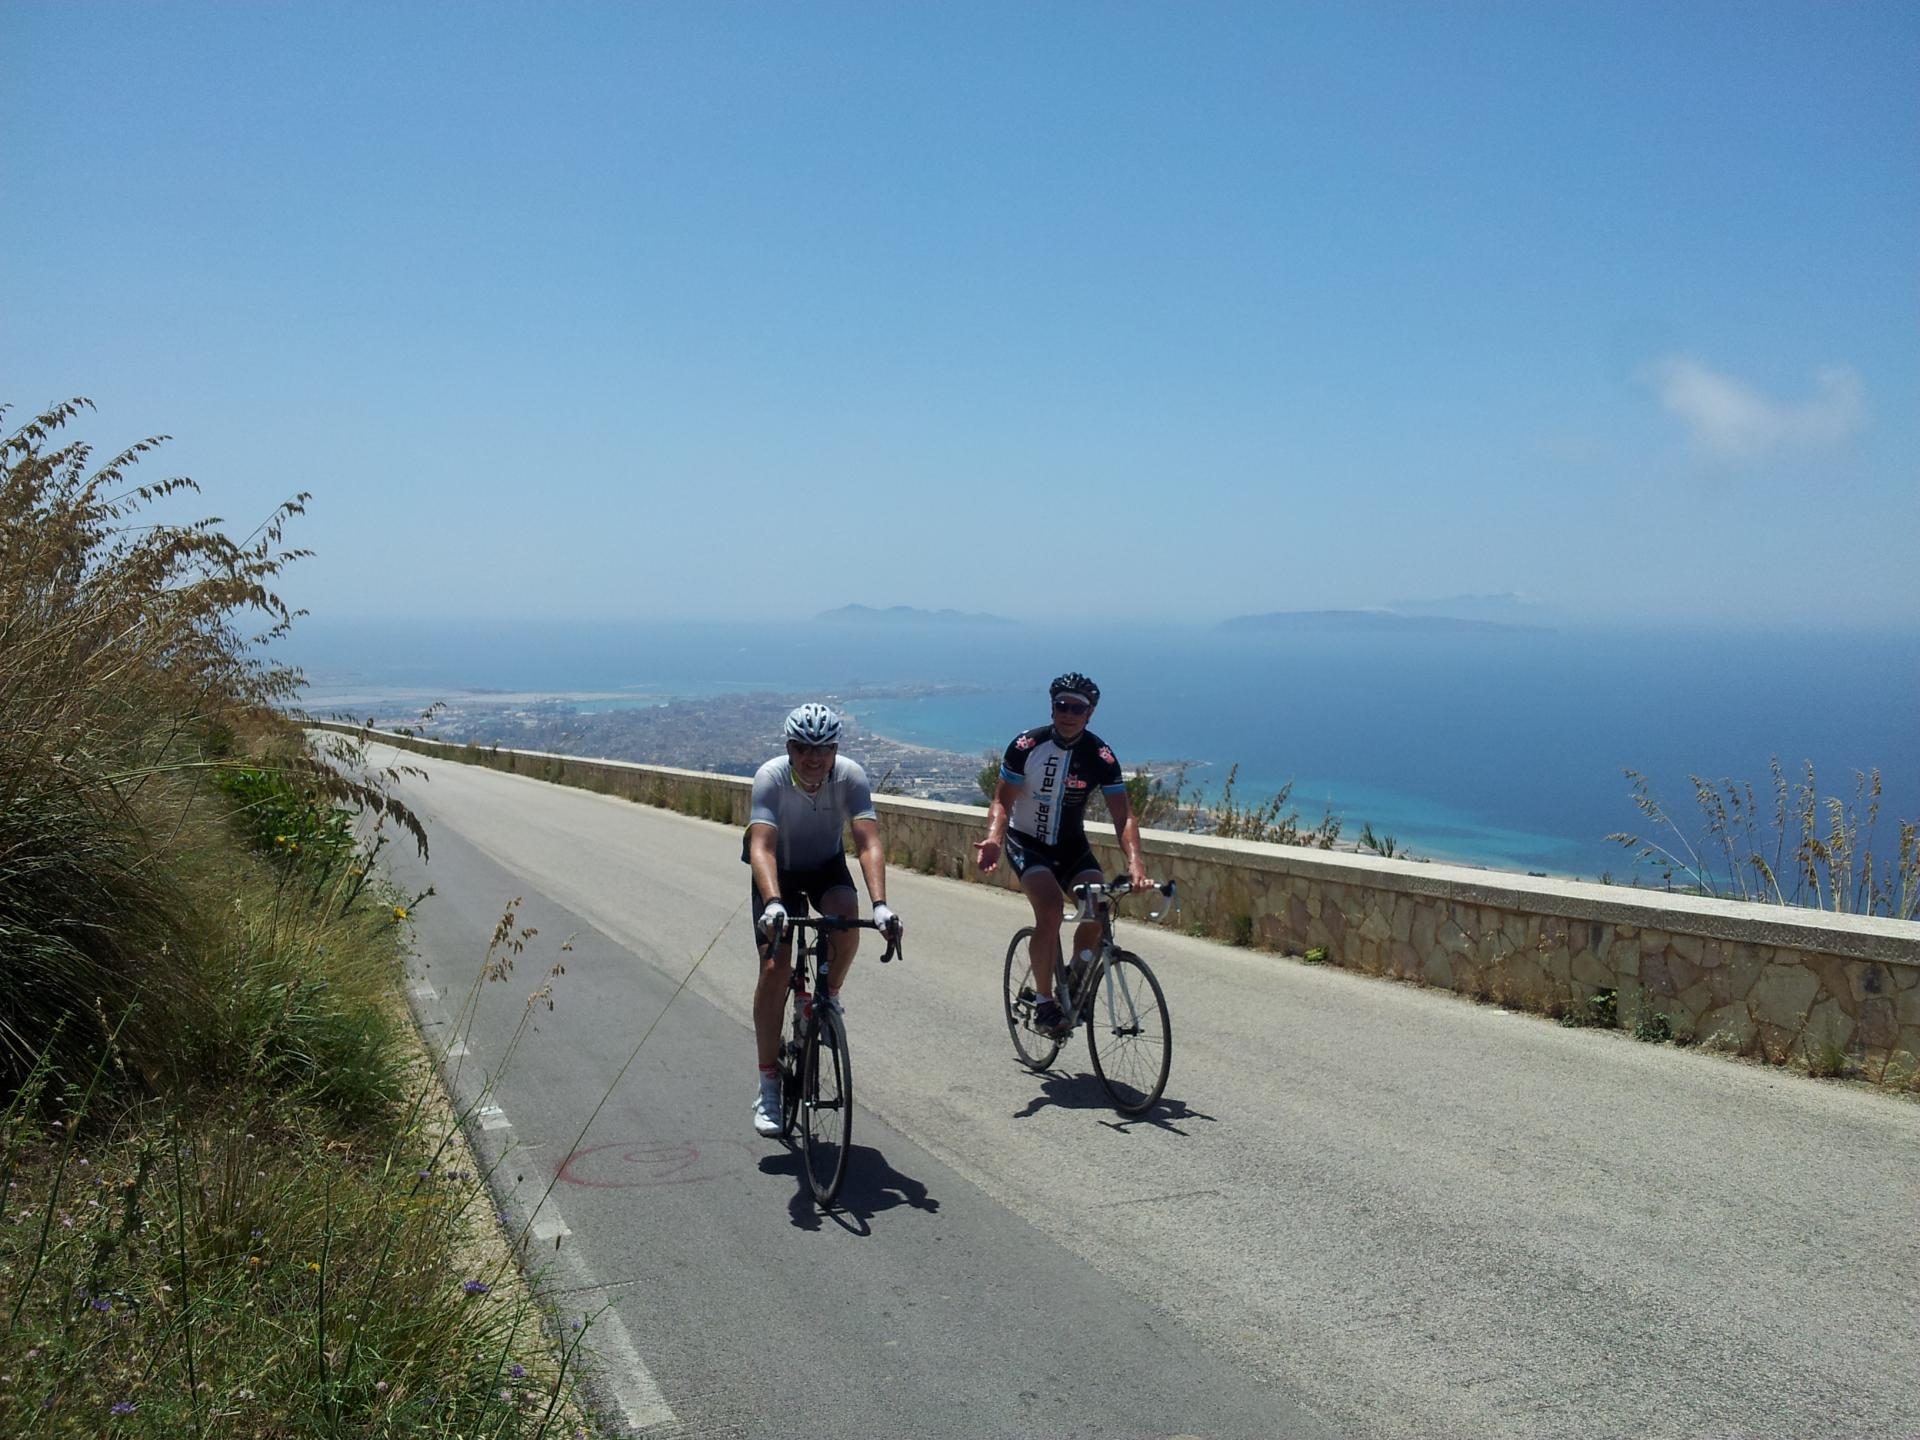 Cruising the coast of Sicily by bike! What could be better?!